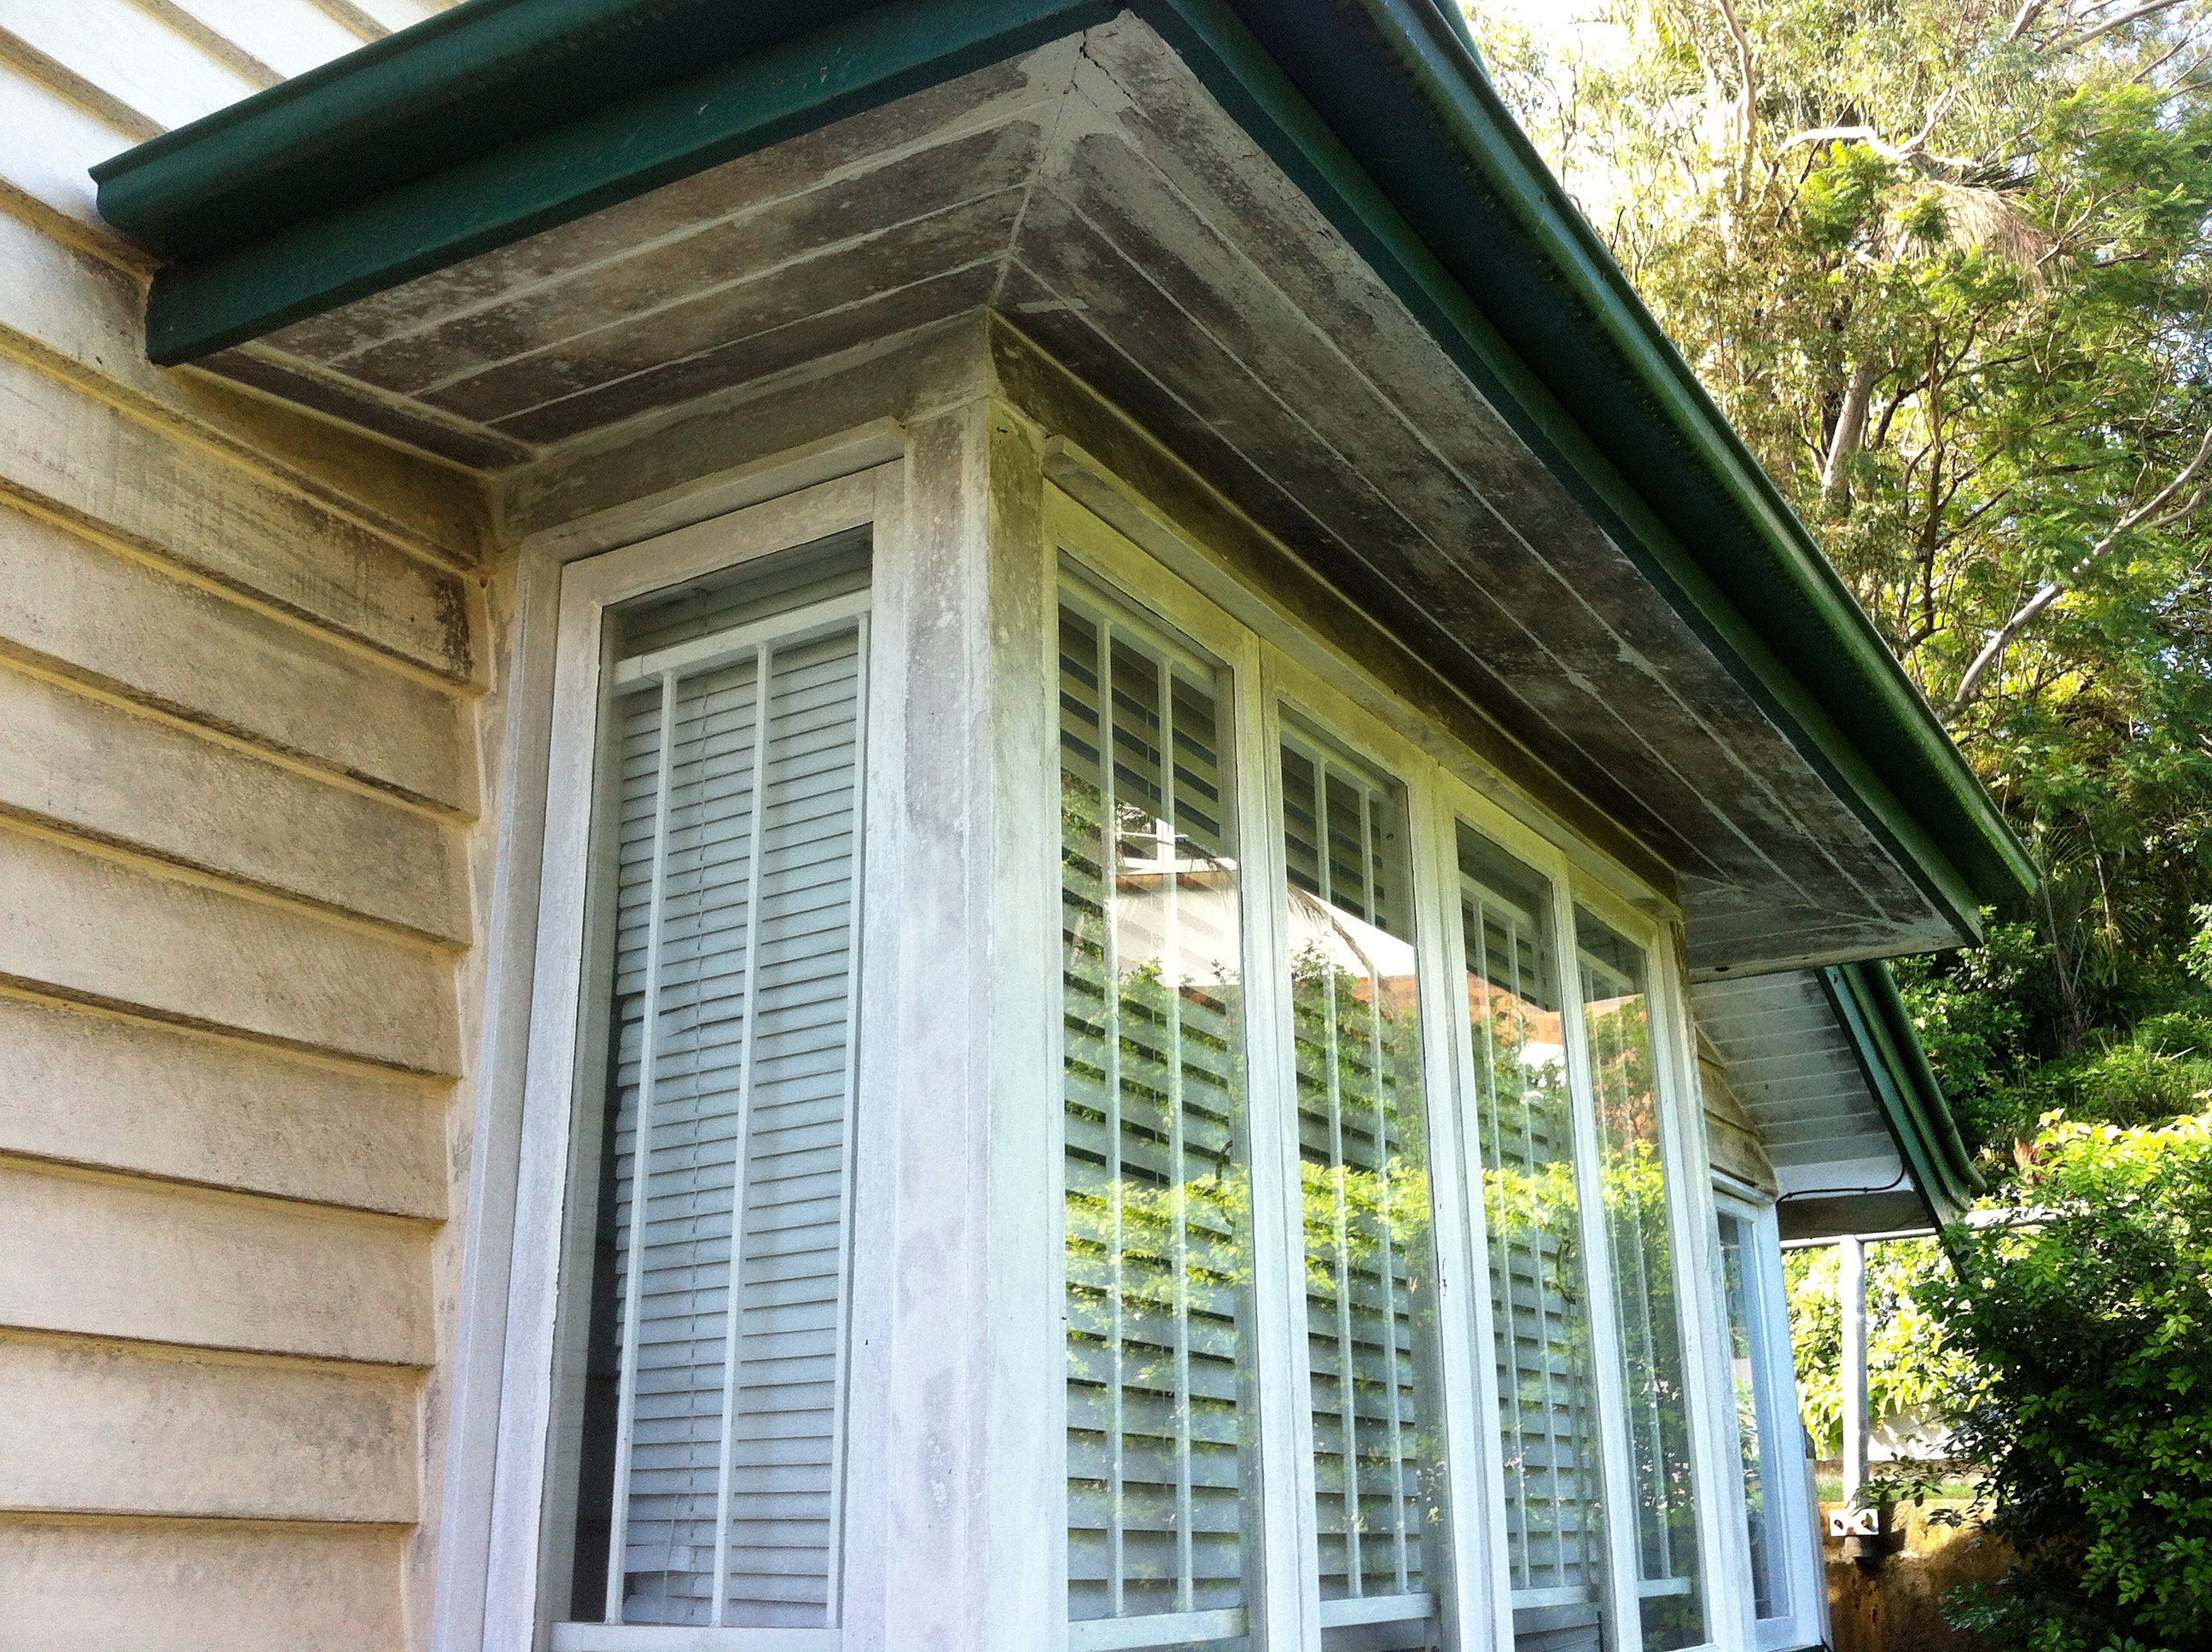 Revive Exterior House Washing Pressure Cleaning Brisbane Qld Our Low Pressure House Wash